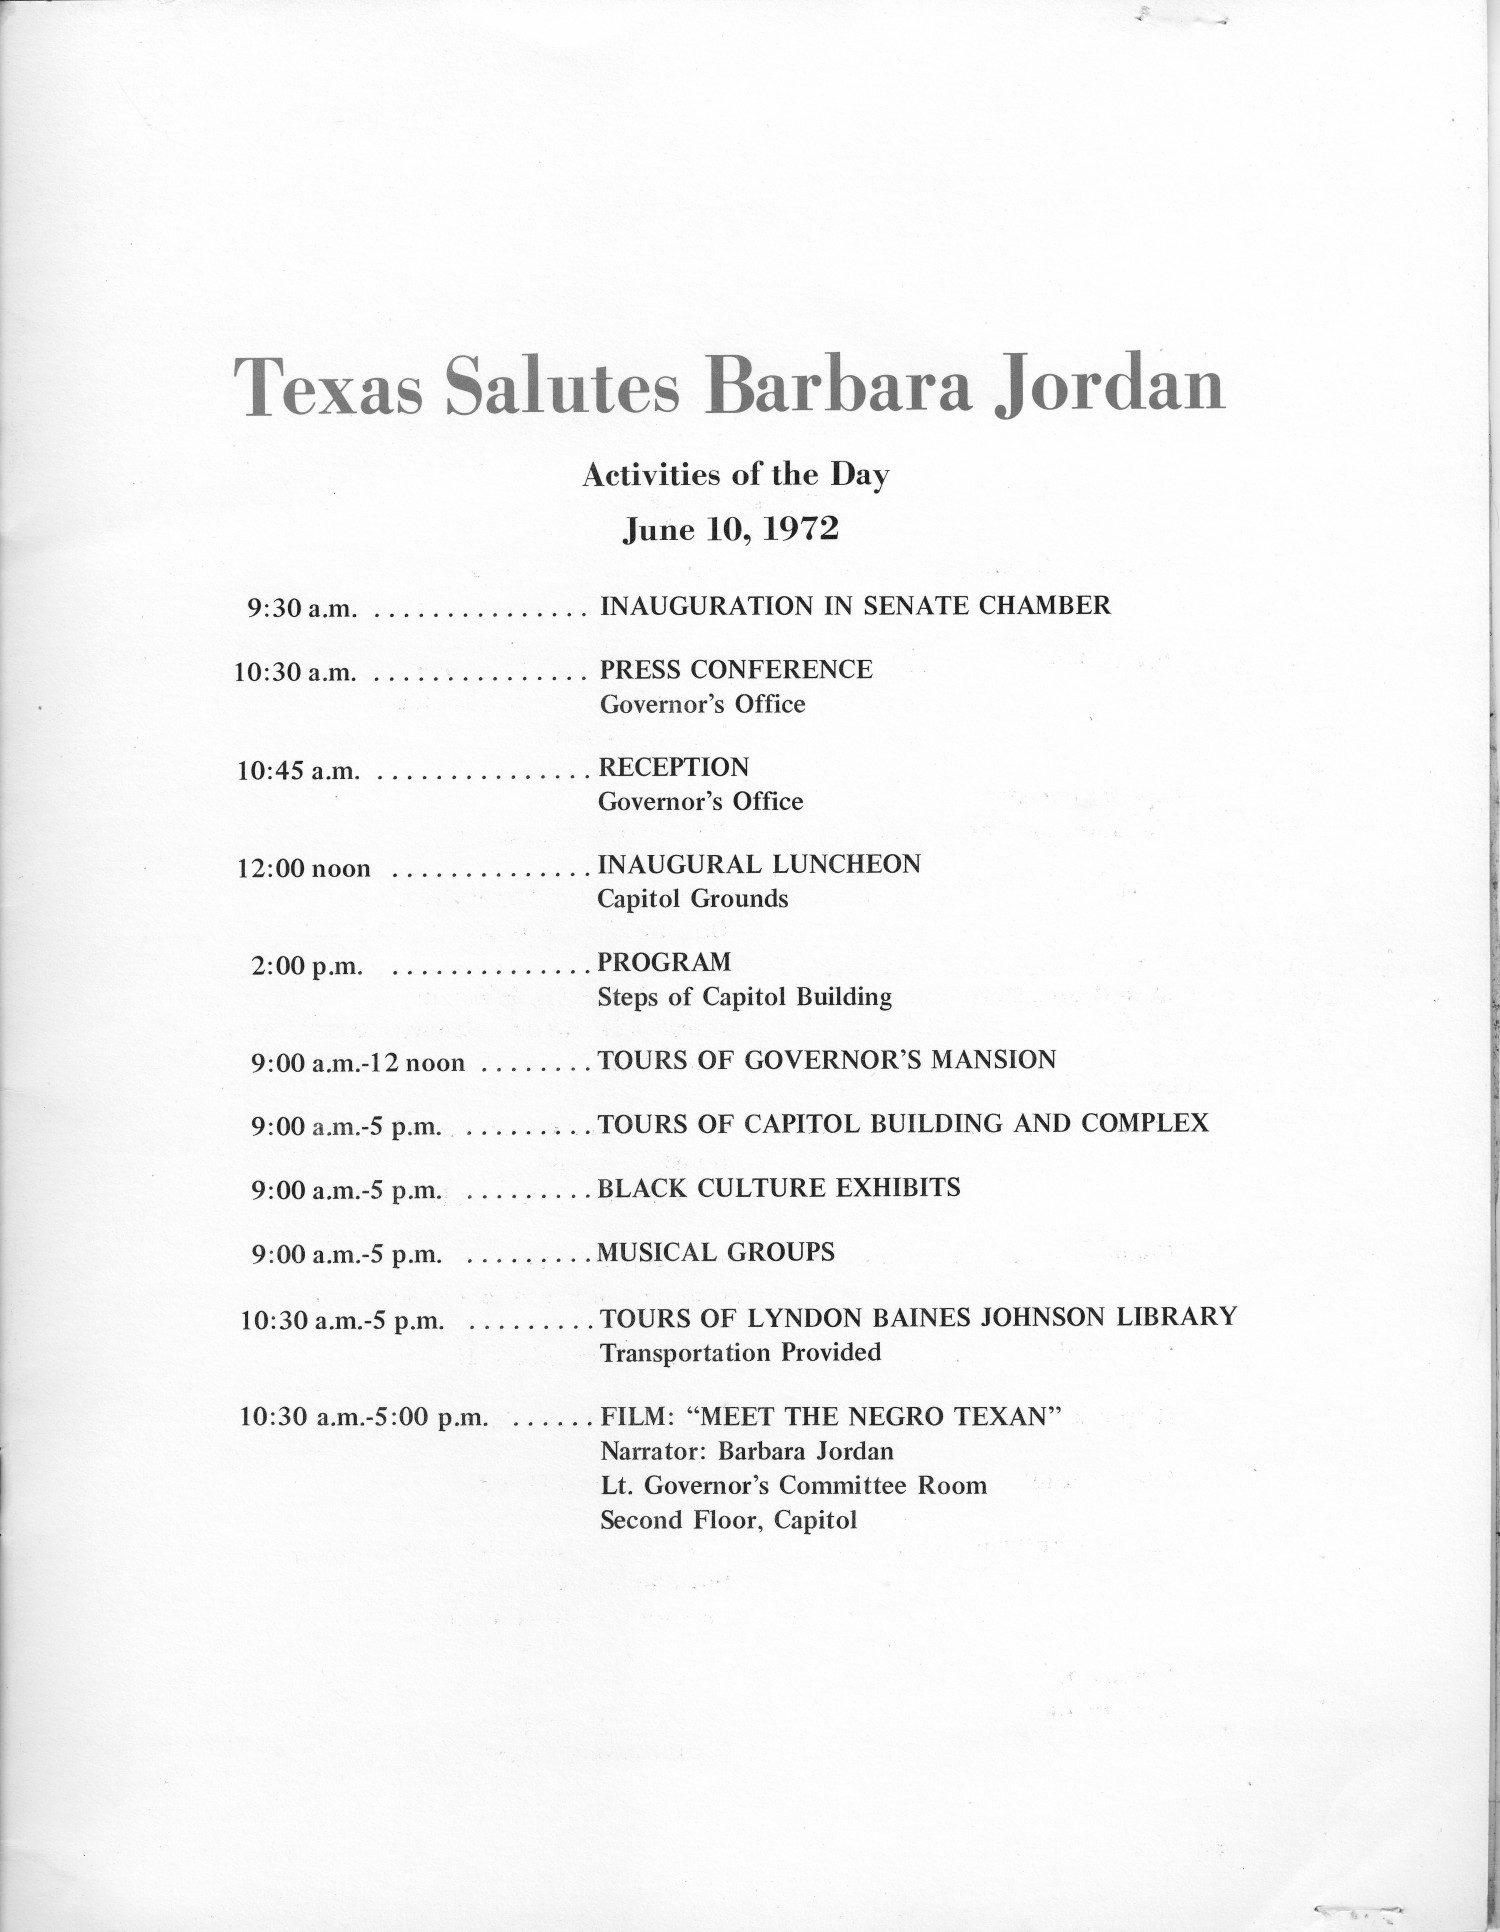 Barbara Jordan - Governor of Texas for a day - June 10, 1972                                                                                                      [Sequence #]: 3 of 8